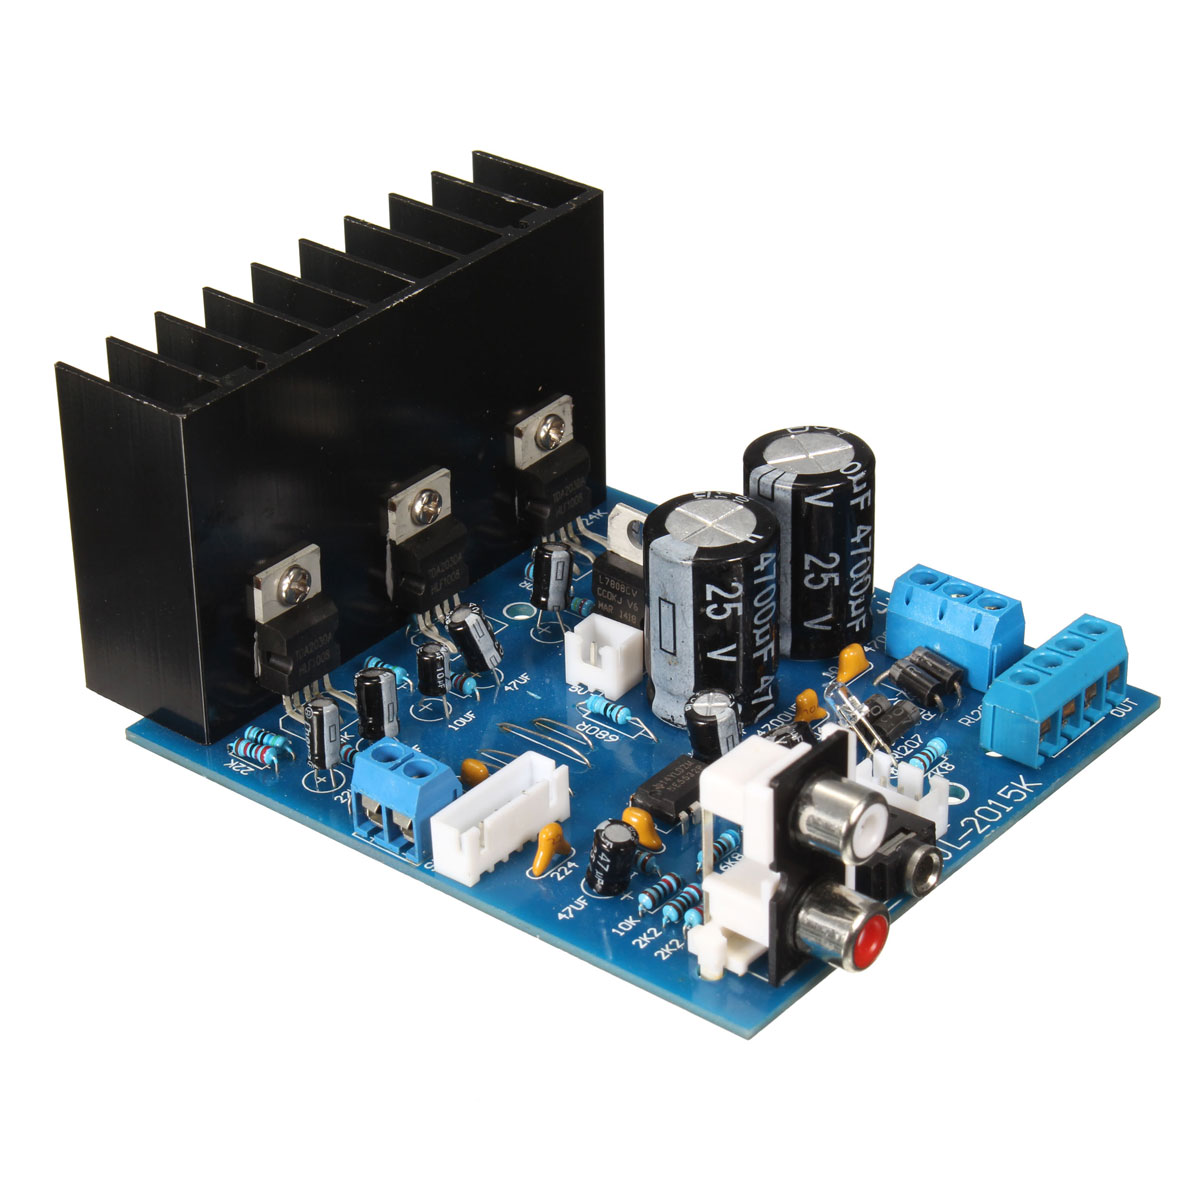 New Arrival 1Pcs TDA2030A 2.1 Subwoofer Amplifier Board AC 12V 3-Channel Electronics Module 18W +18 W with 6Pin cable image